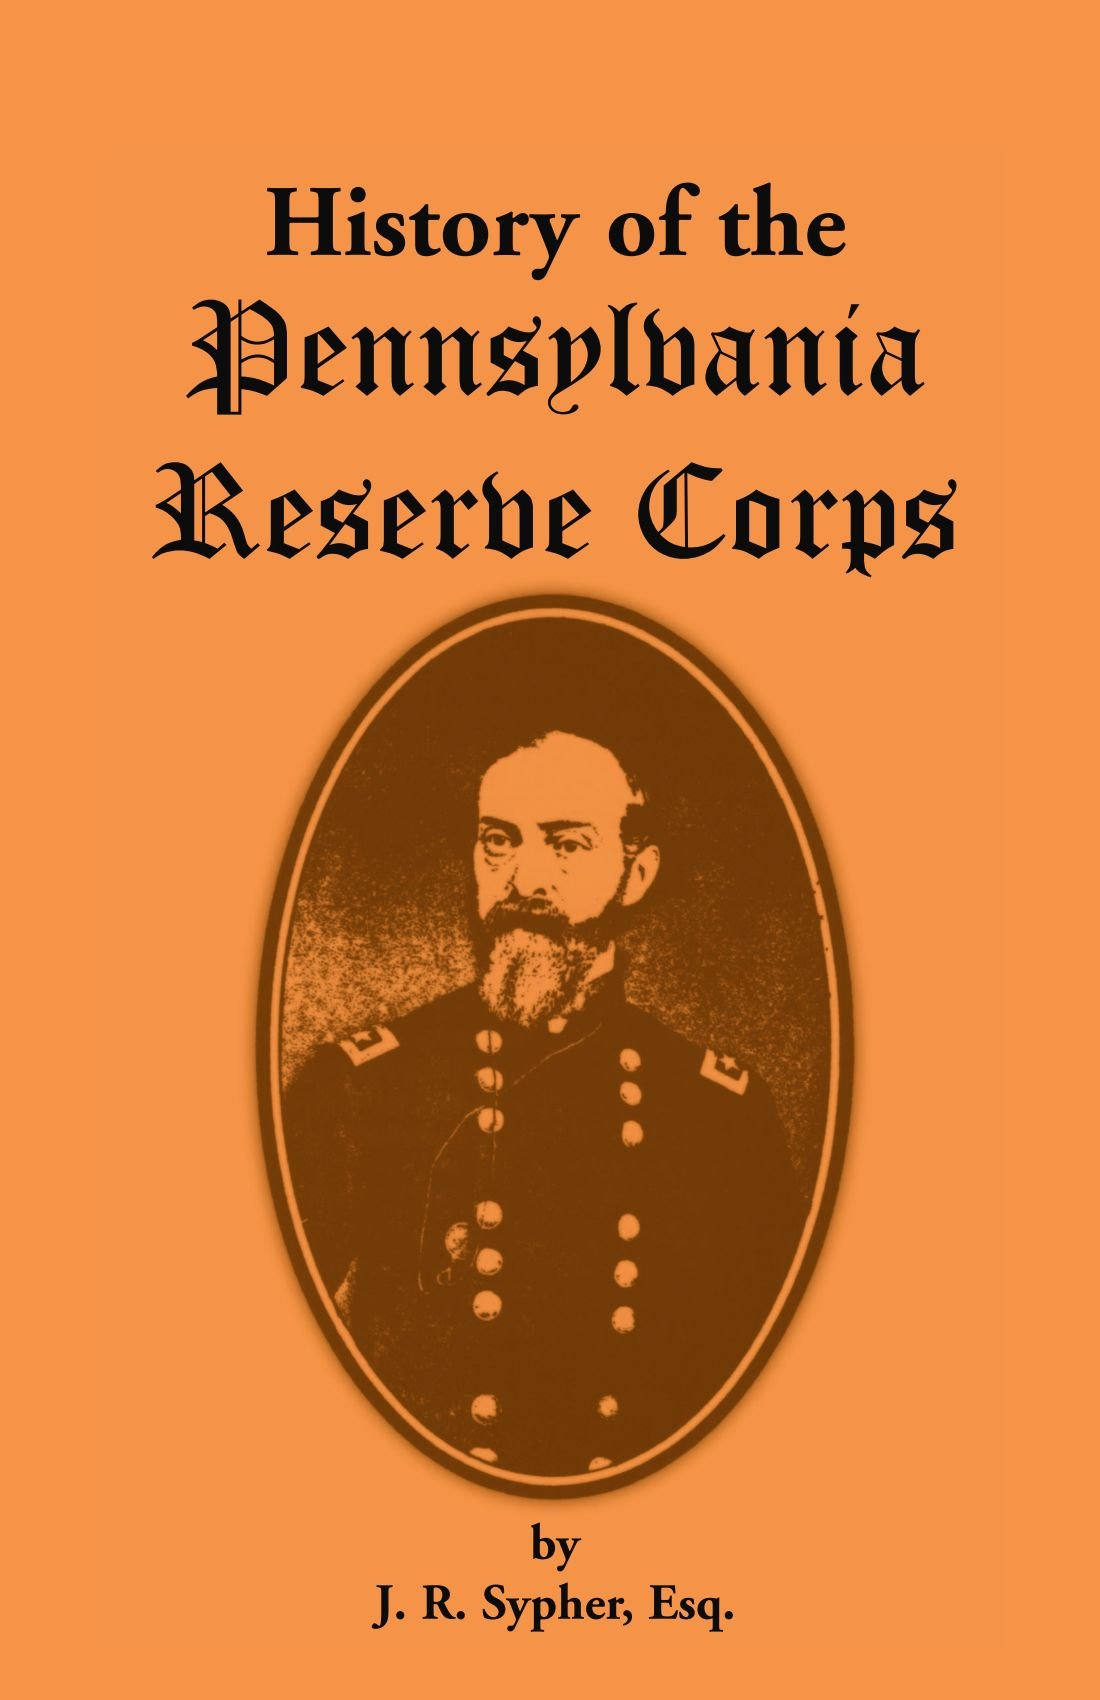 History of the Pennsylvania Reserve Corps: A Complete Record of the Organization, and of the Different Companies, Regiments, and Brigades pdf